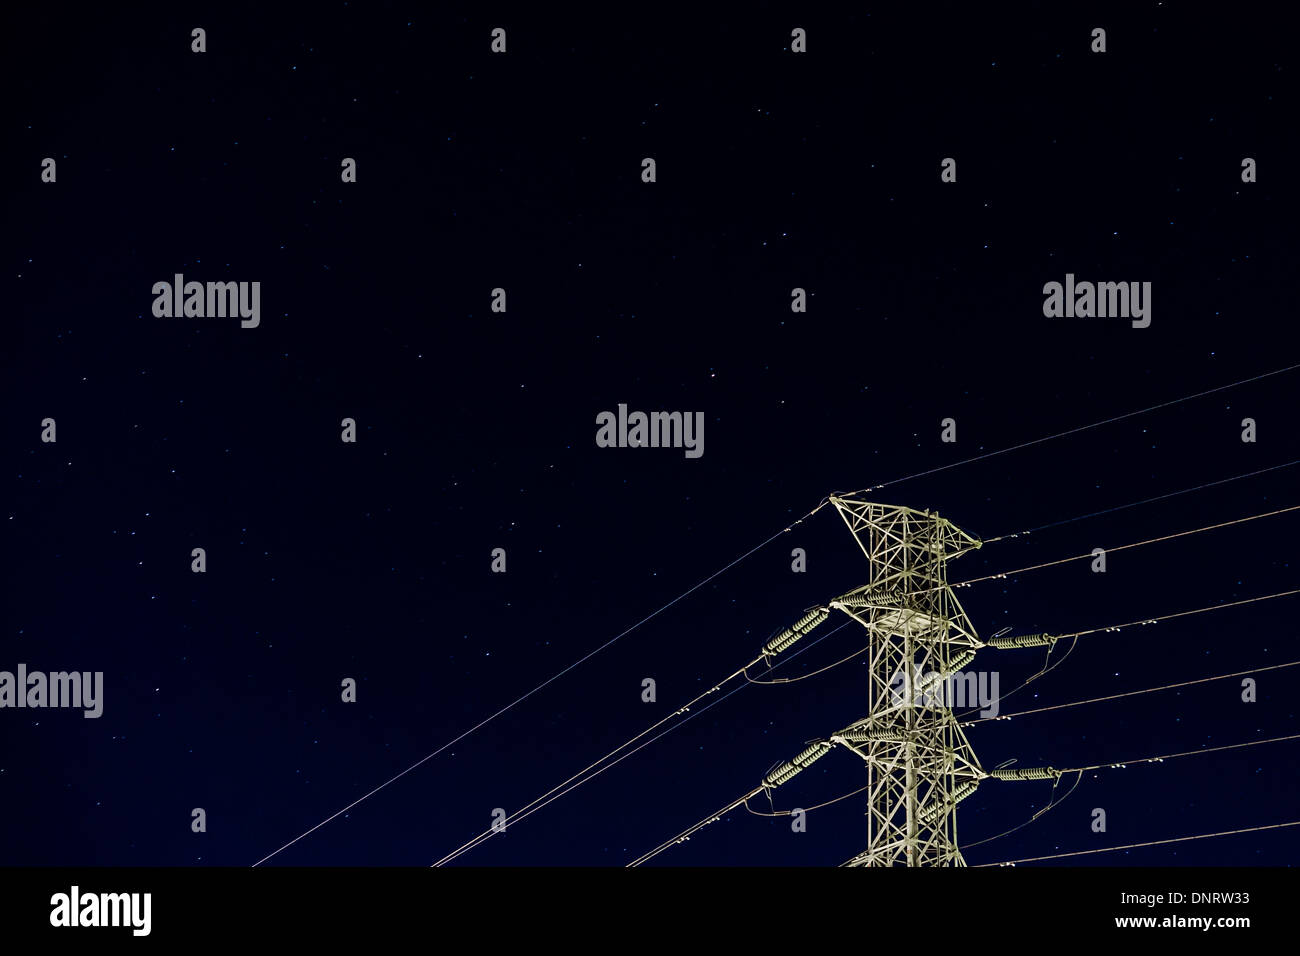 Telegraph Pole with Dark Sky in the backgroud - Stock Image